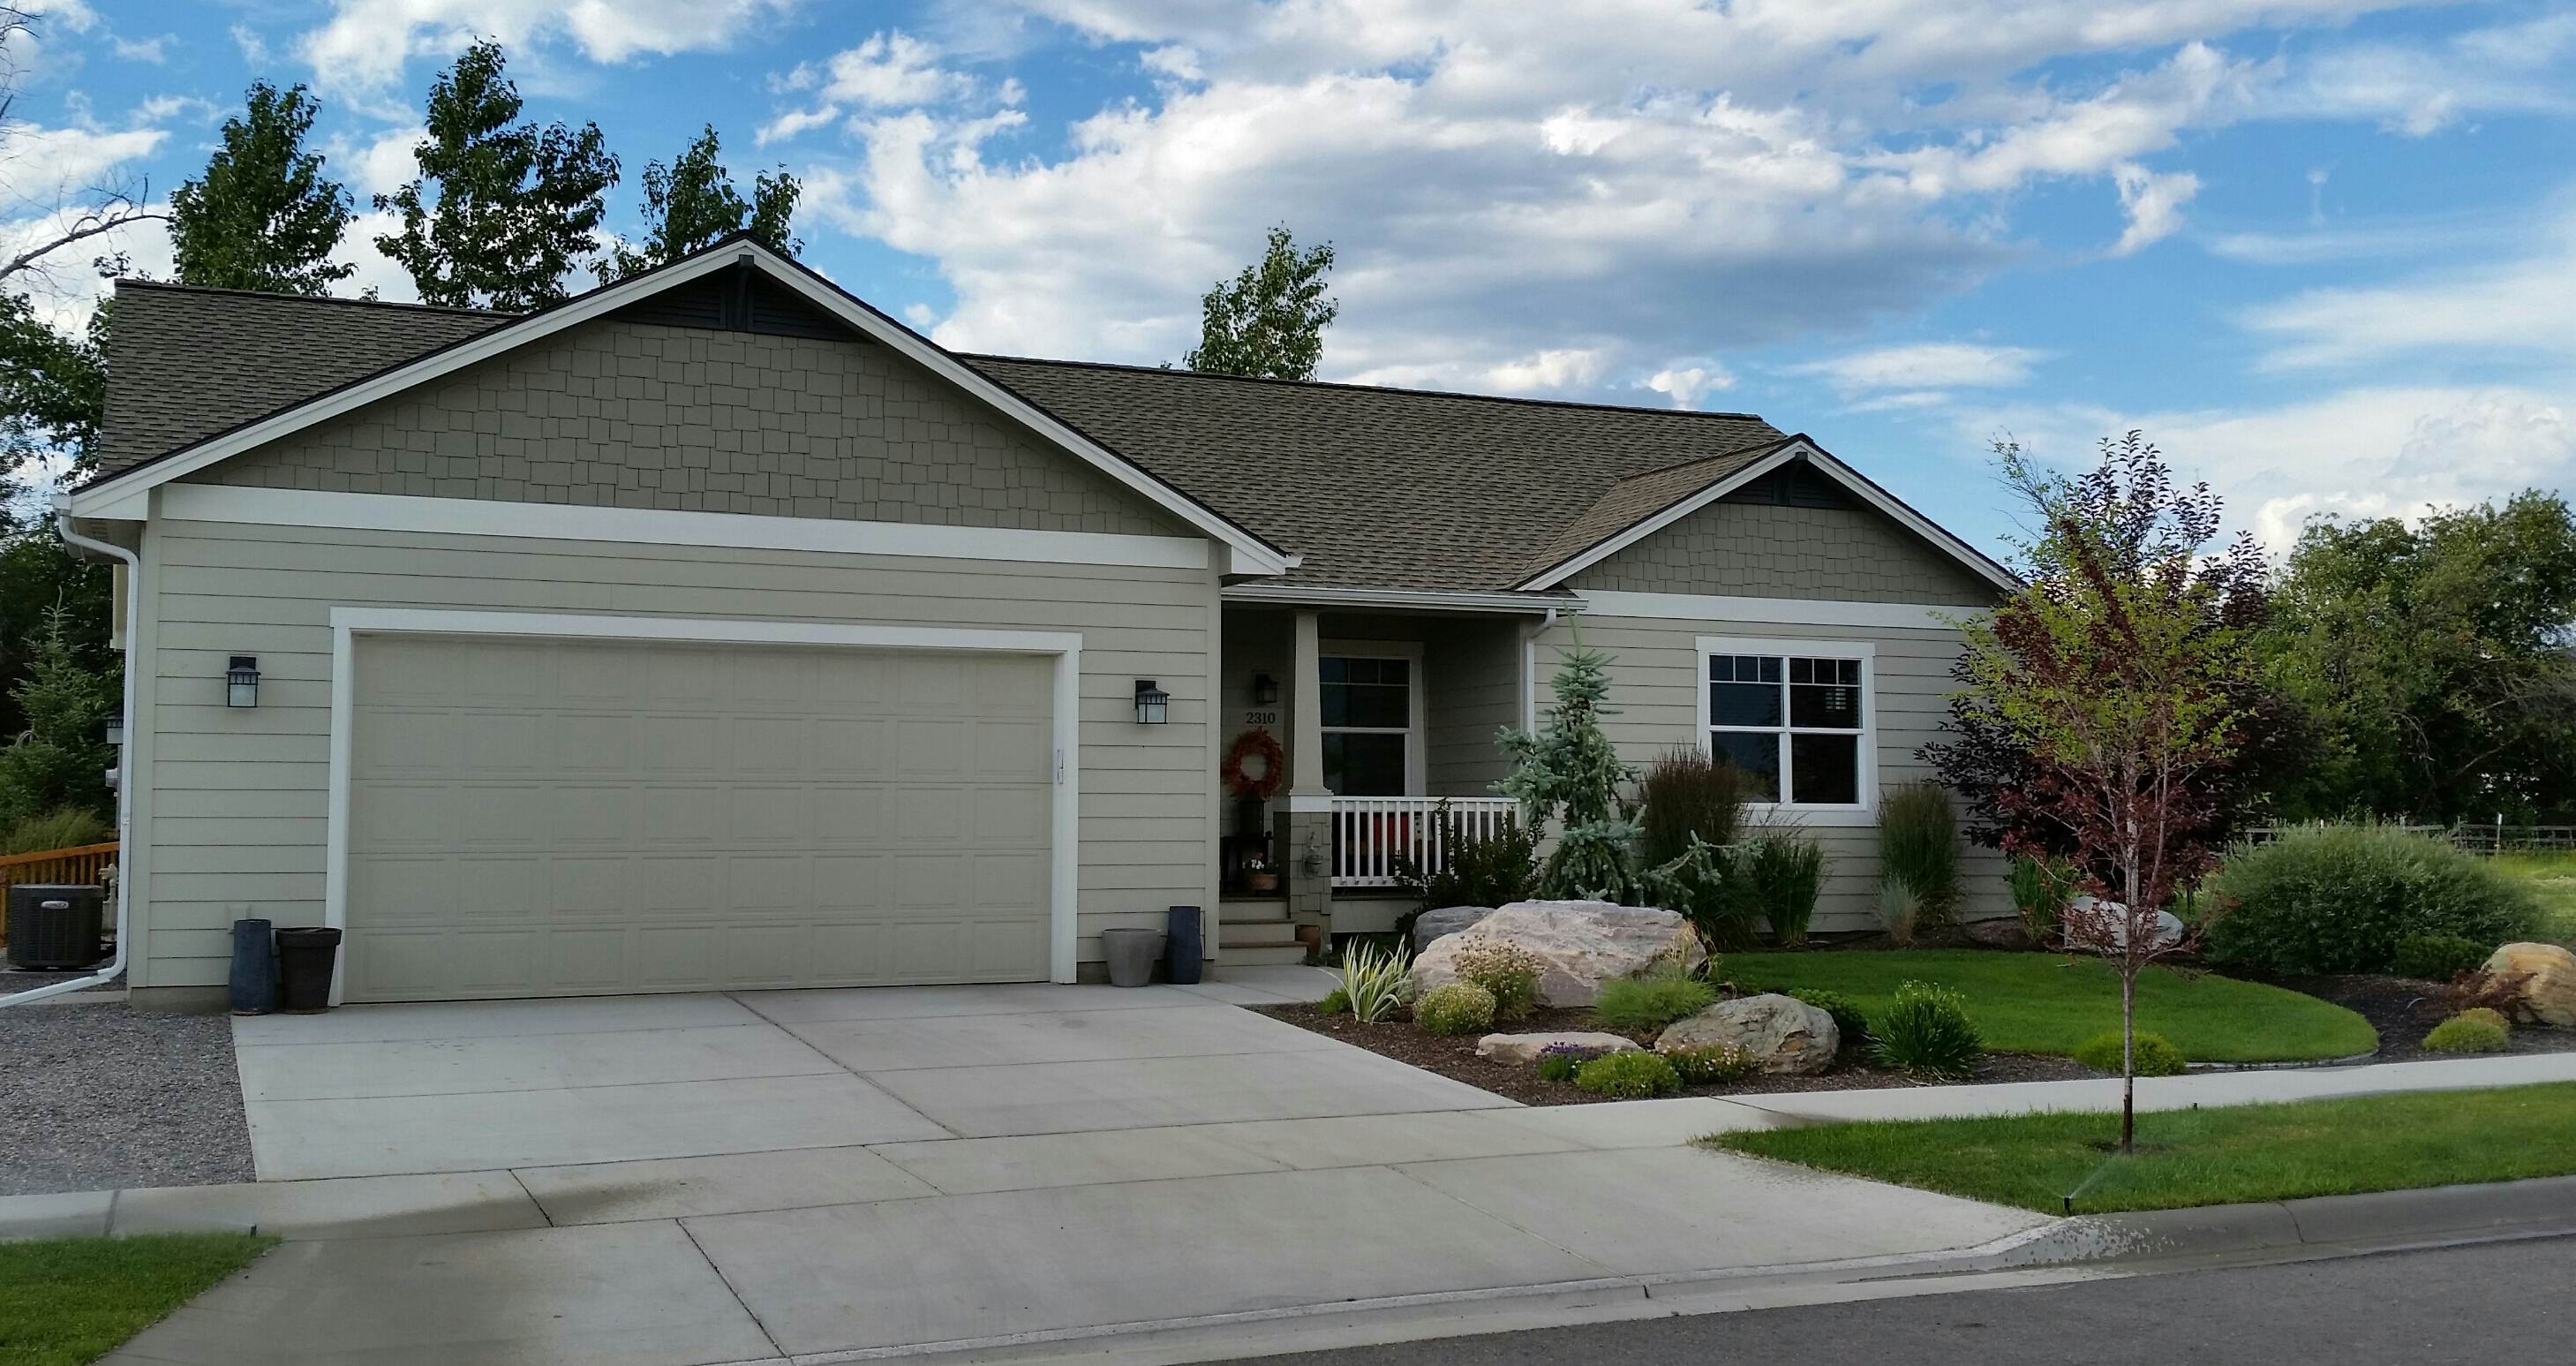 Montana missoula county clinton - Just Listed 329 000 Missoula